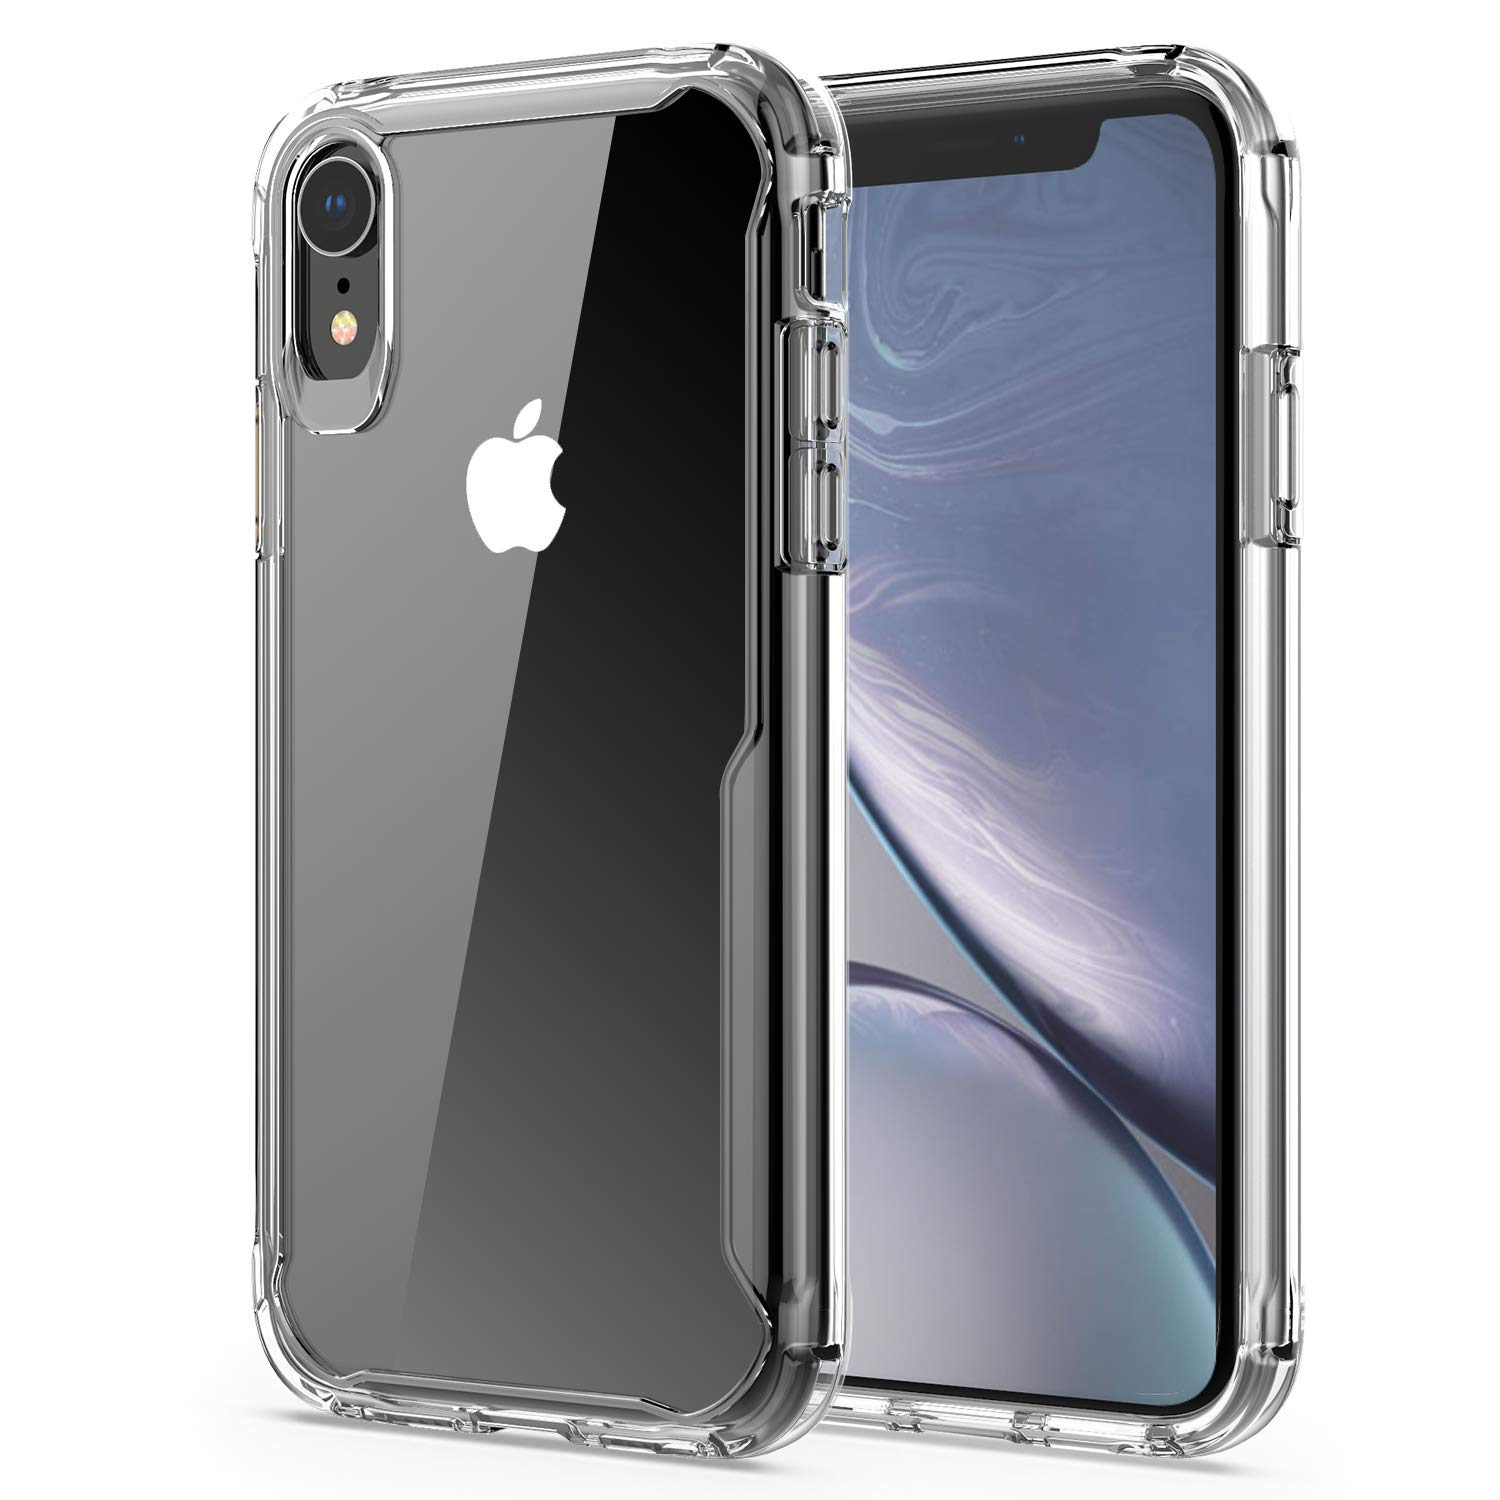 EFFENX iPhone XR Case - Clear Cover iPhone XR Shockproof Bumper with Air Cushion Protective case Soft and Slim (Clear Color)